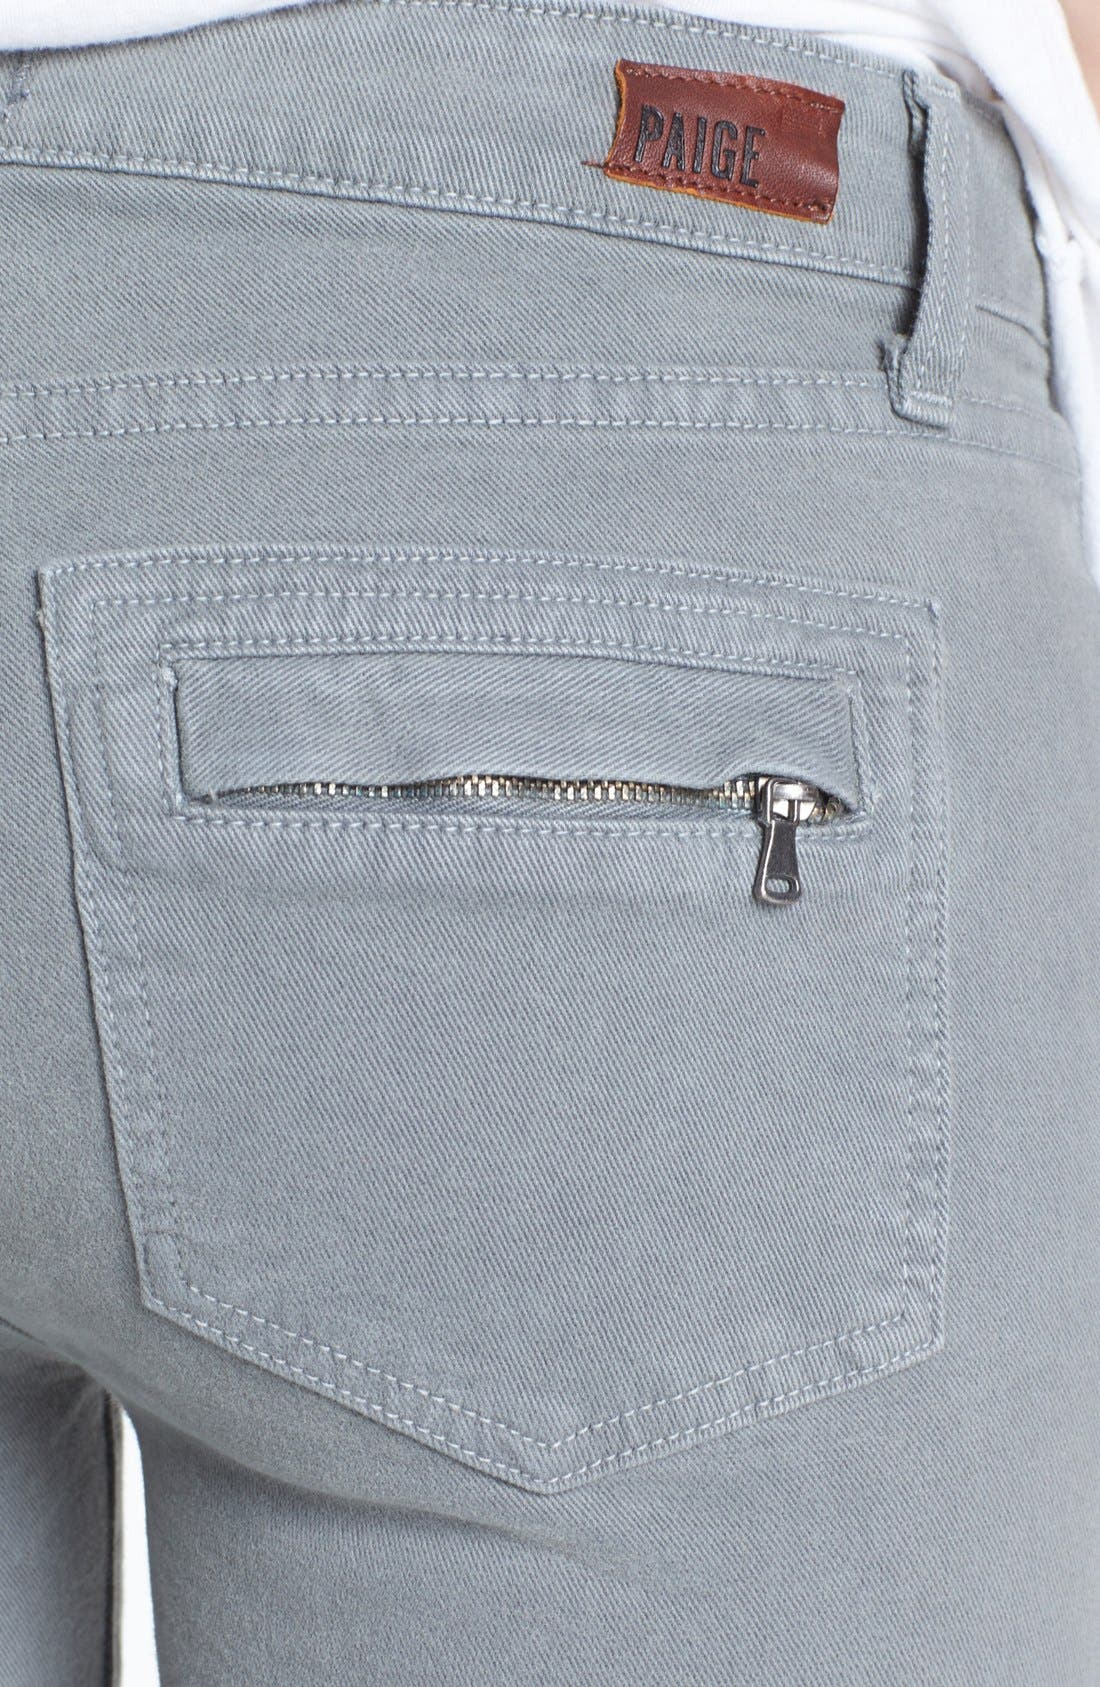 Alternate Image 3  - Paige Denim 'Marley' Zip Detail Skinny Jeans (Cloud Cover)